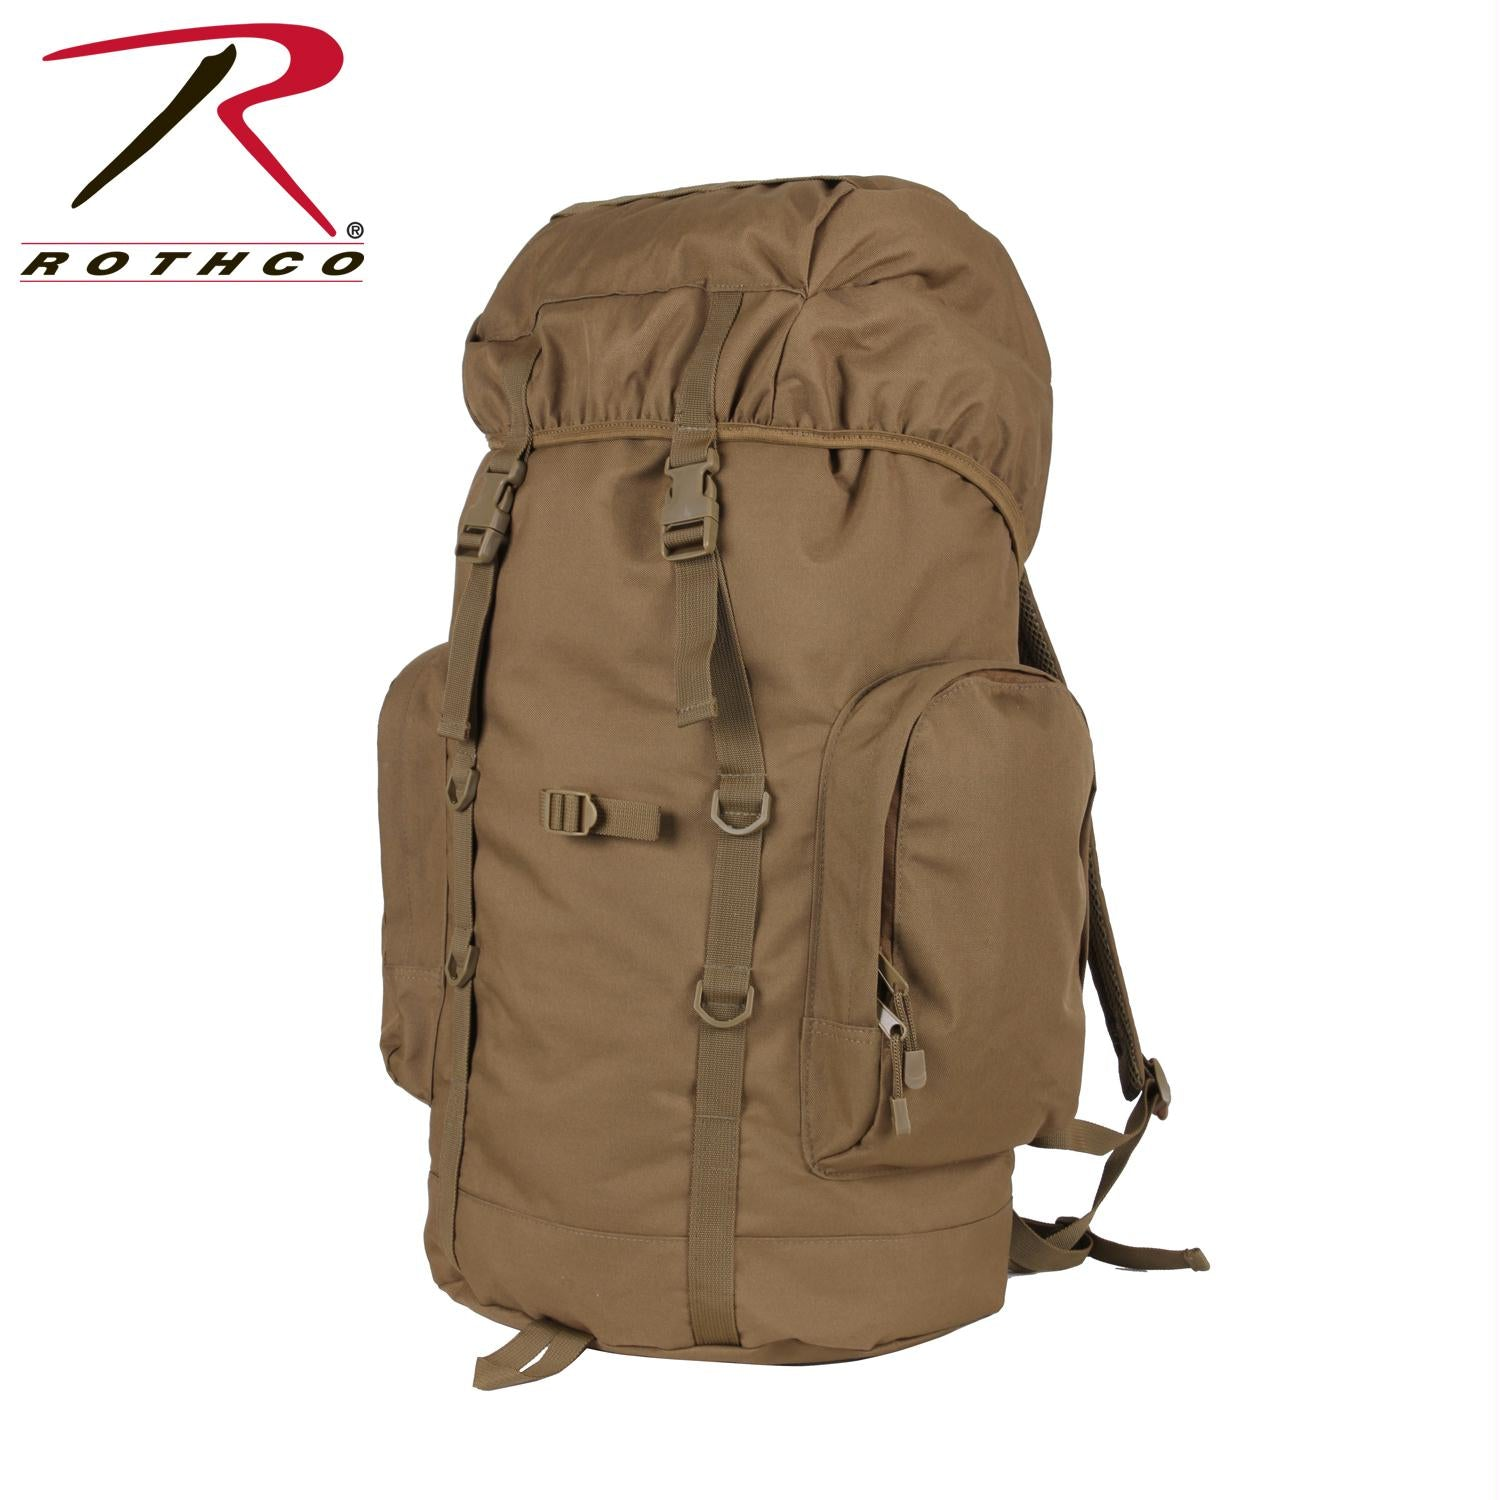 Rothco 45L Tactical Backpack